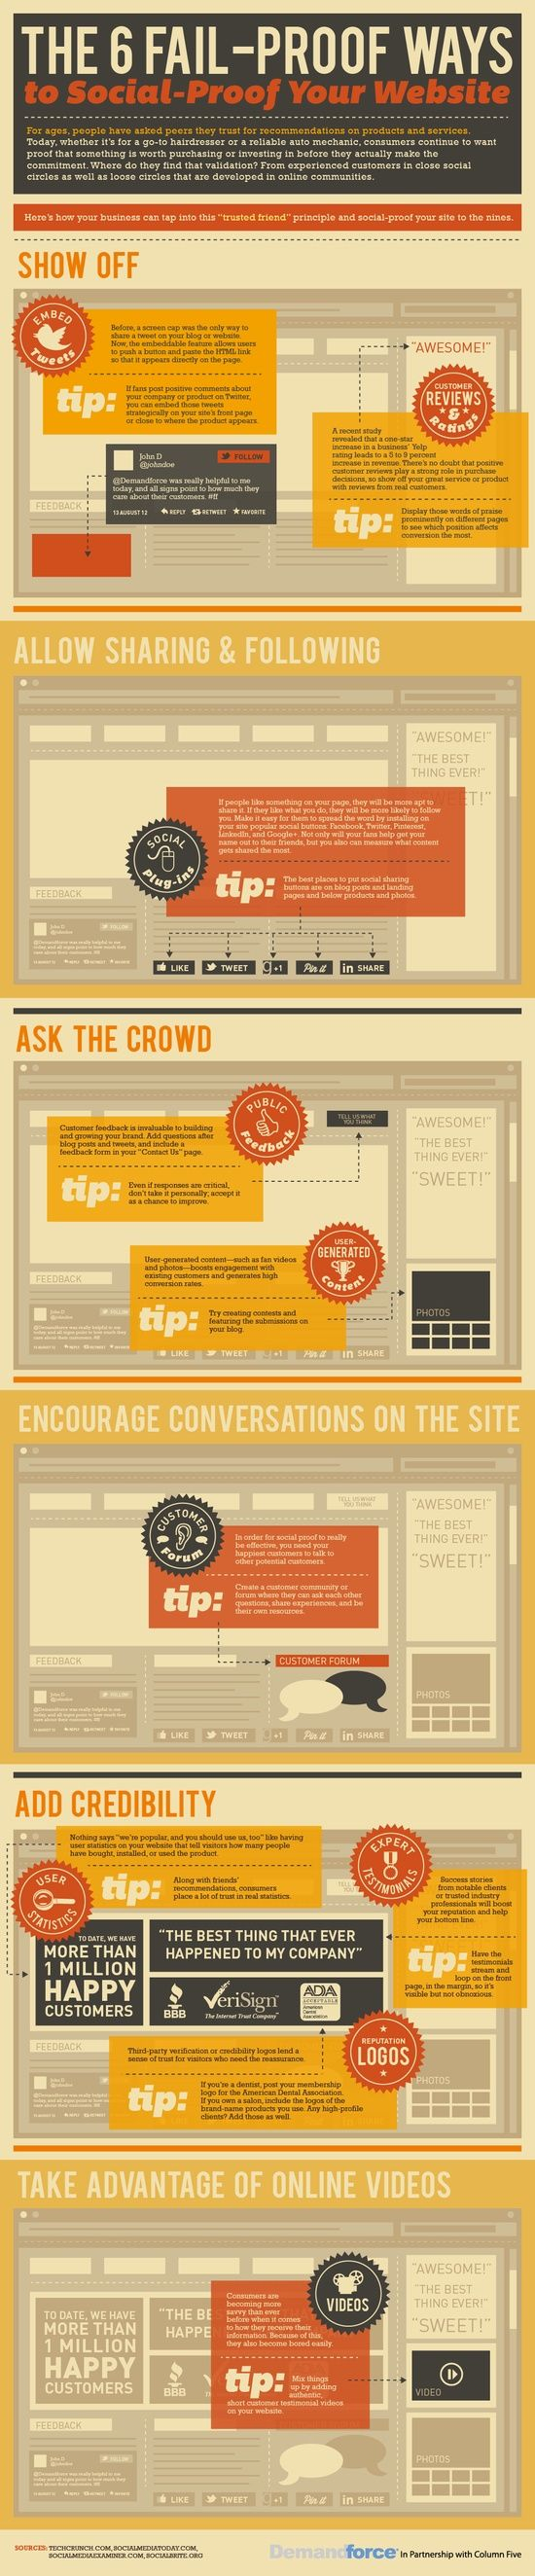 Social Proof Website Tips Which Change Everything #infographics #socialmedia #website  www.themediagenius.com